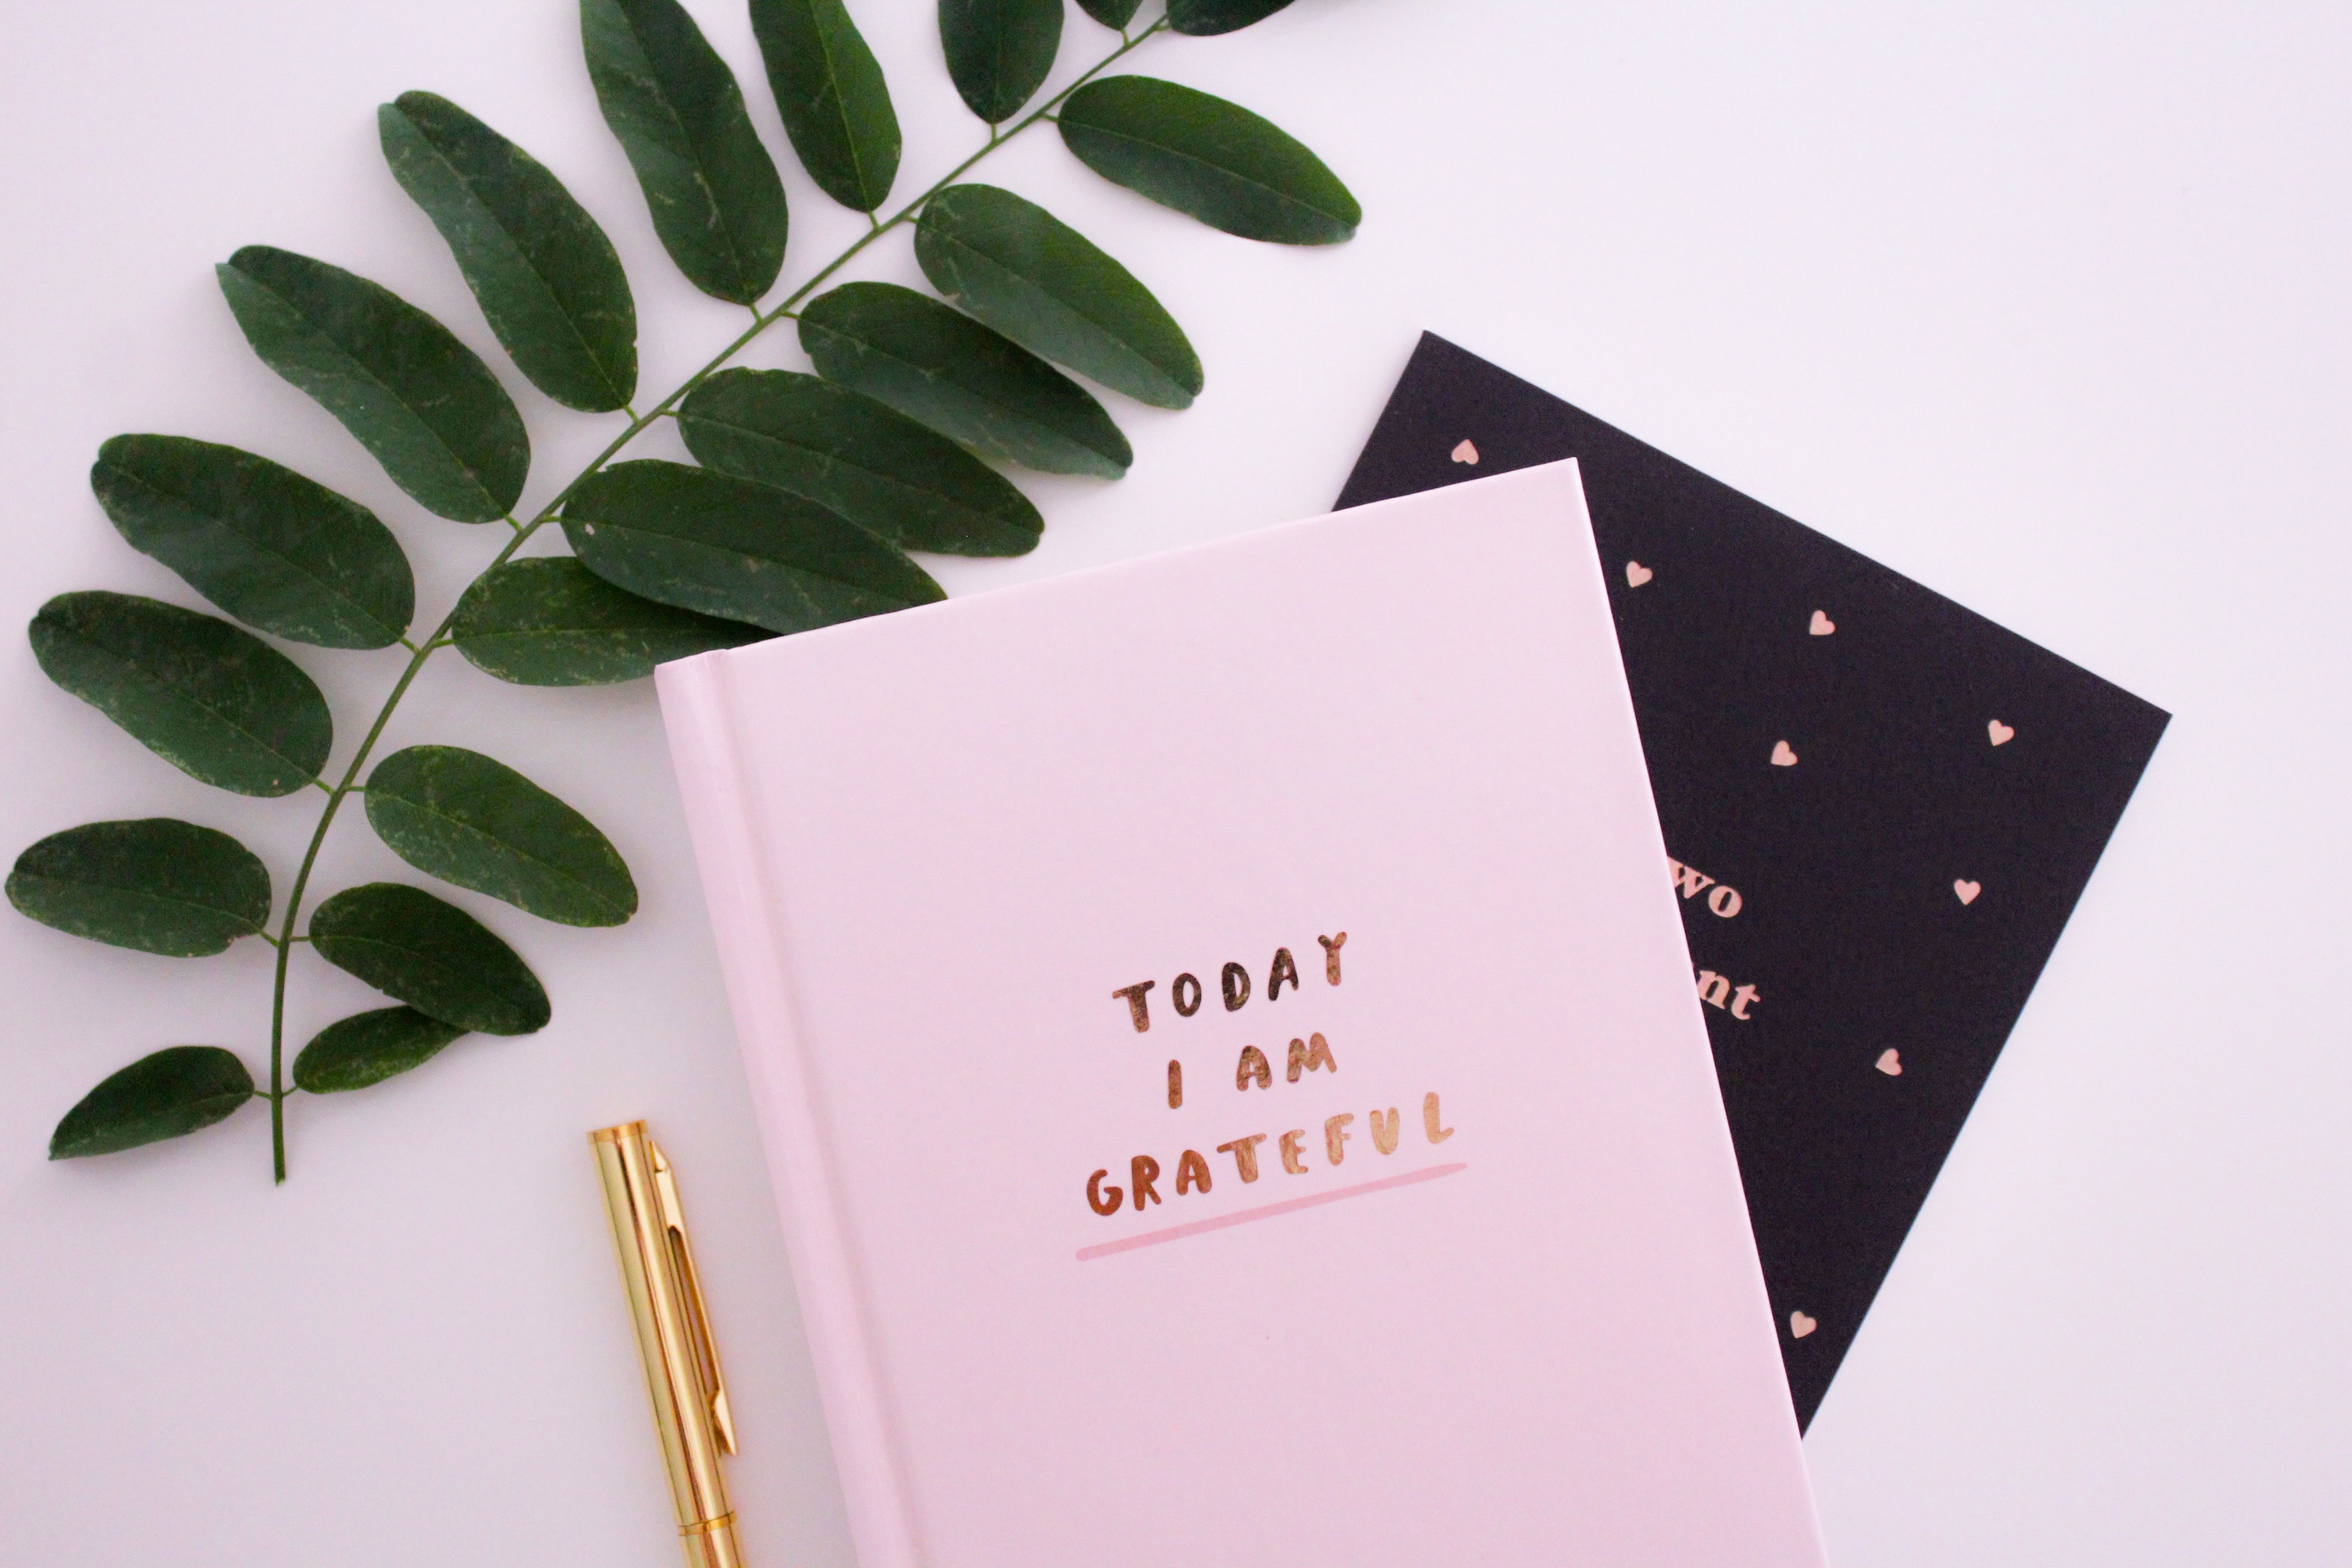 Gratitude Amps Up Your Happiness Needle. Photo By Fressh Connection On Unsplash